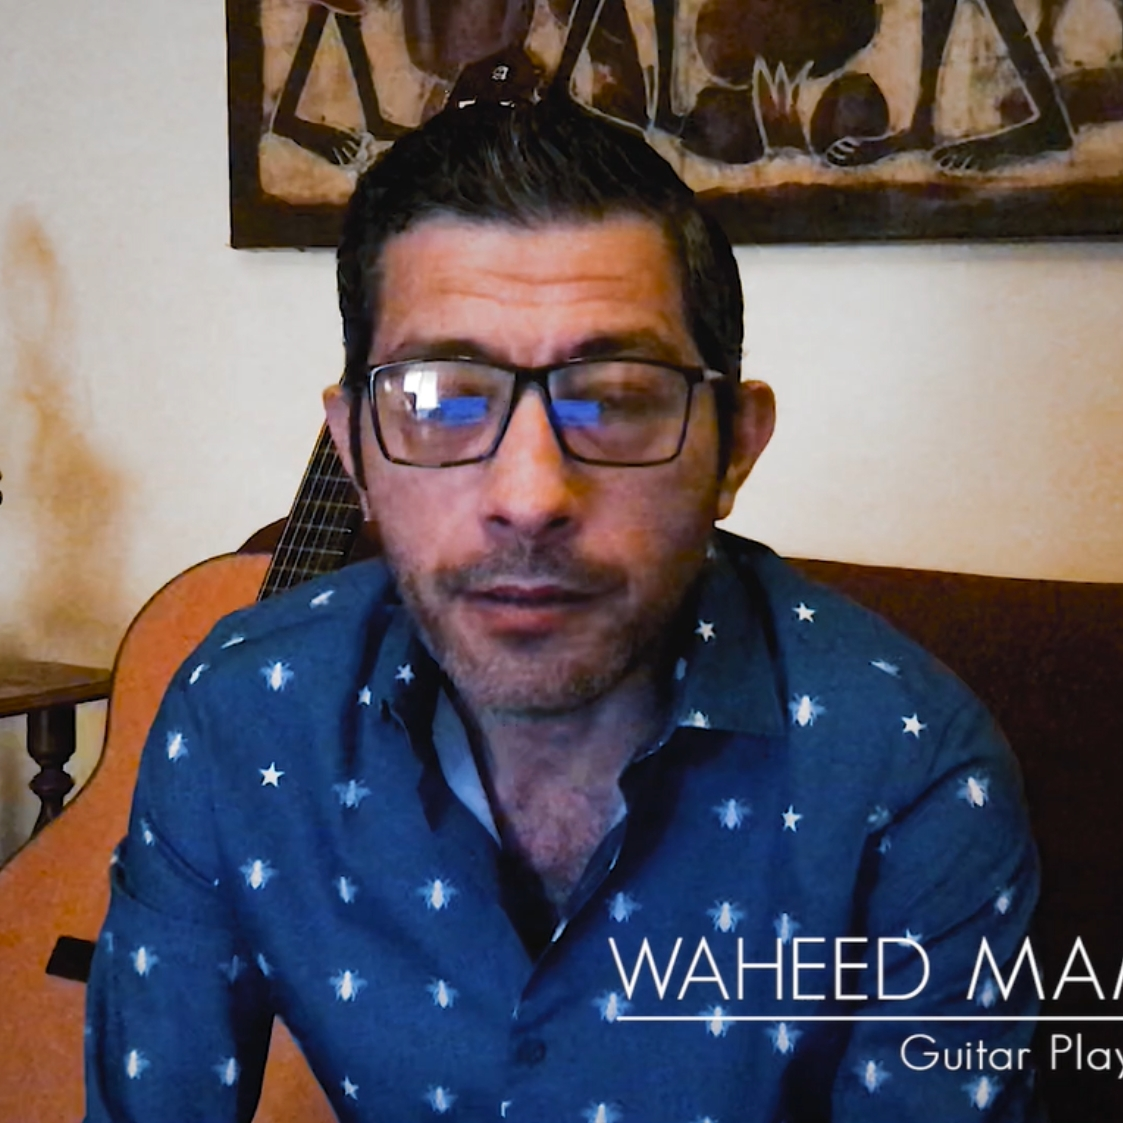 With Waheed Mamdouh - Portraits in Times of Pandemic